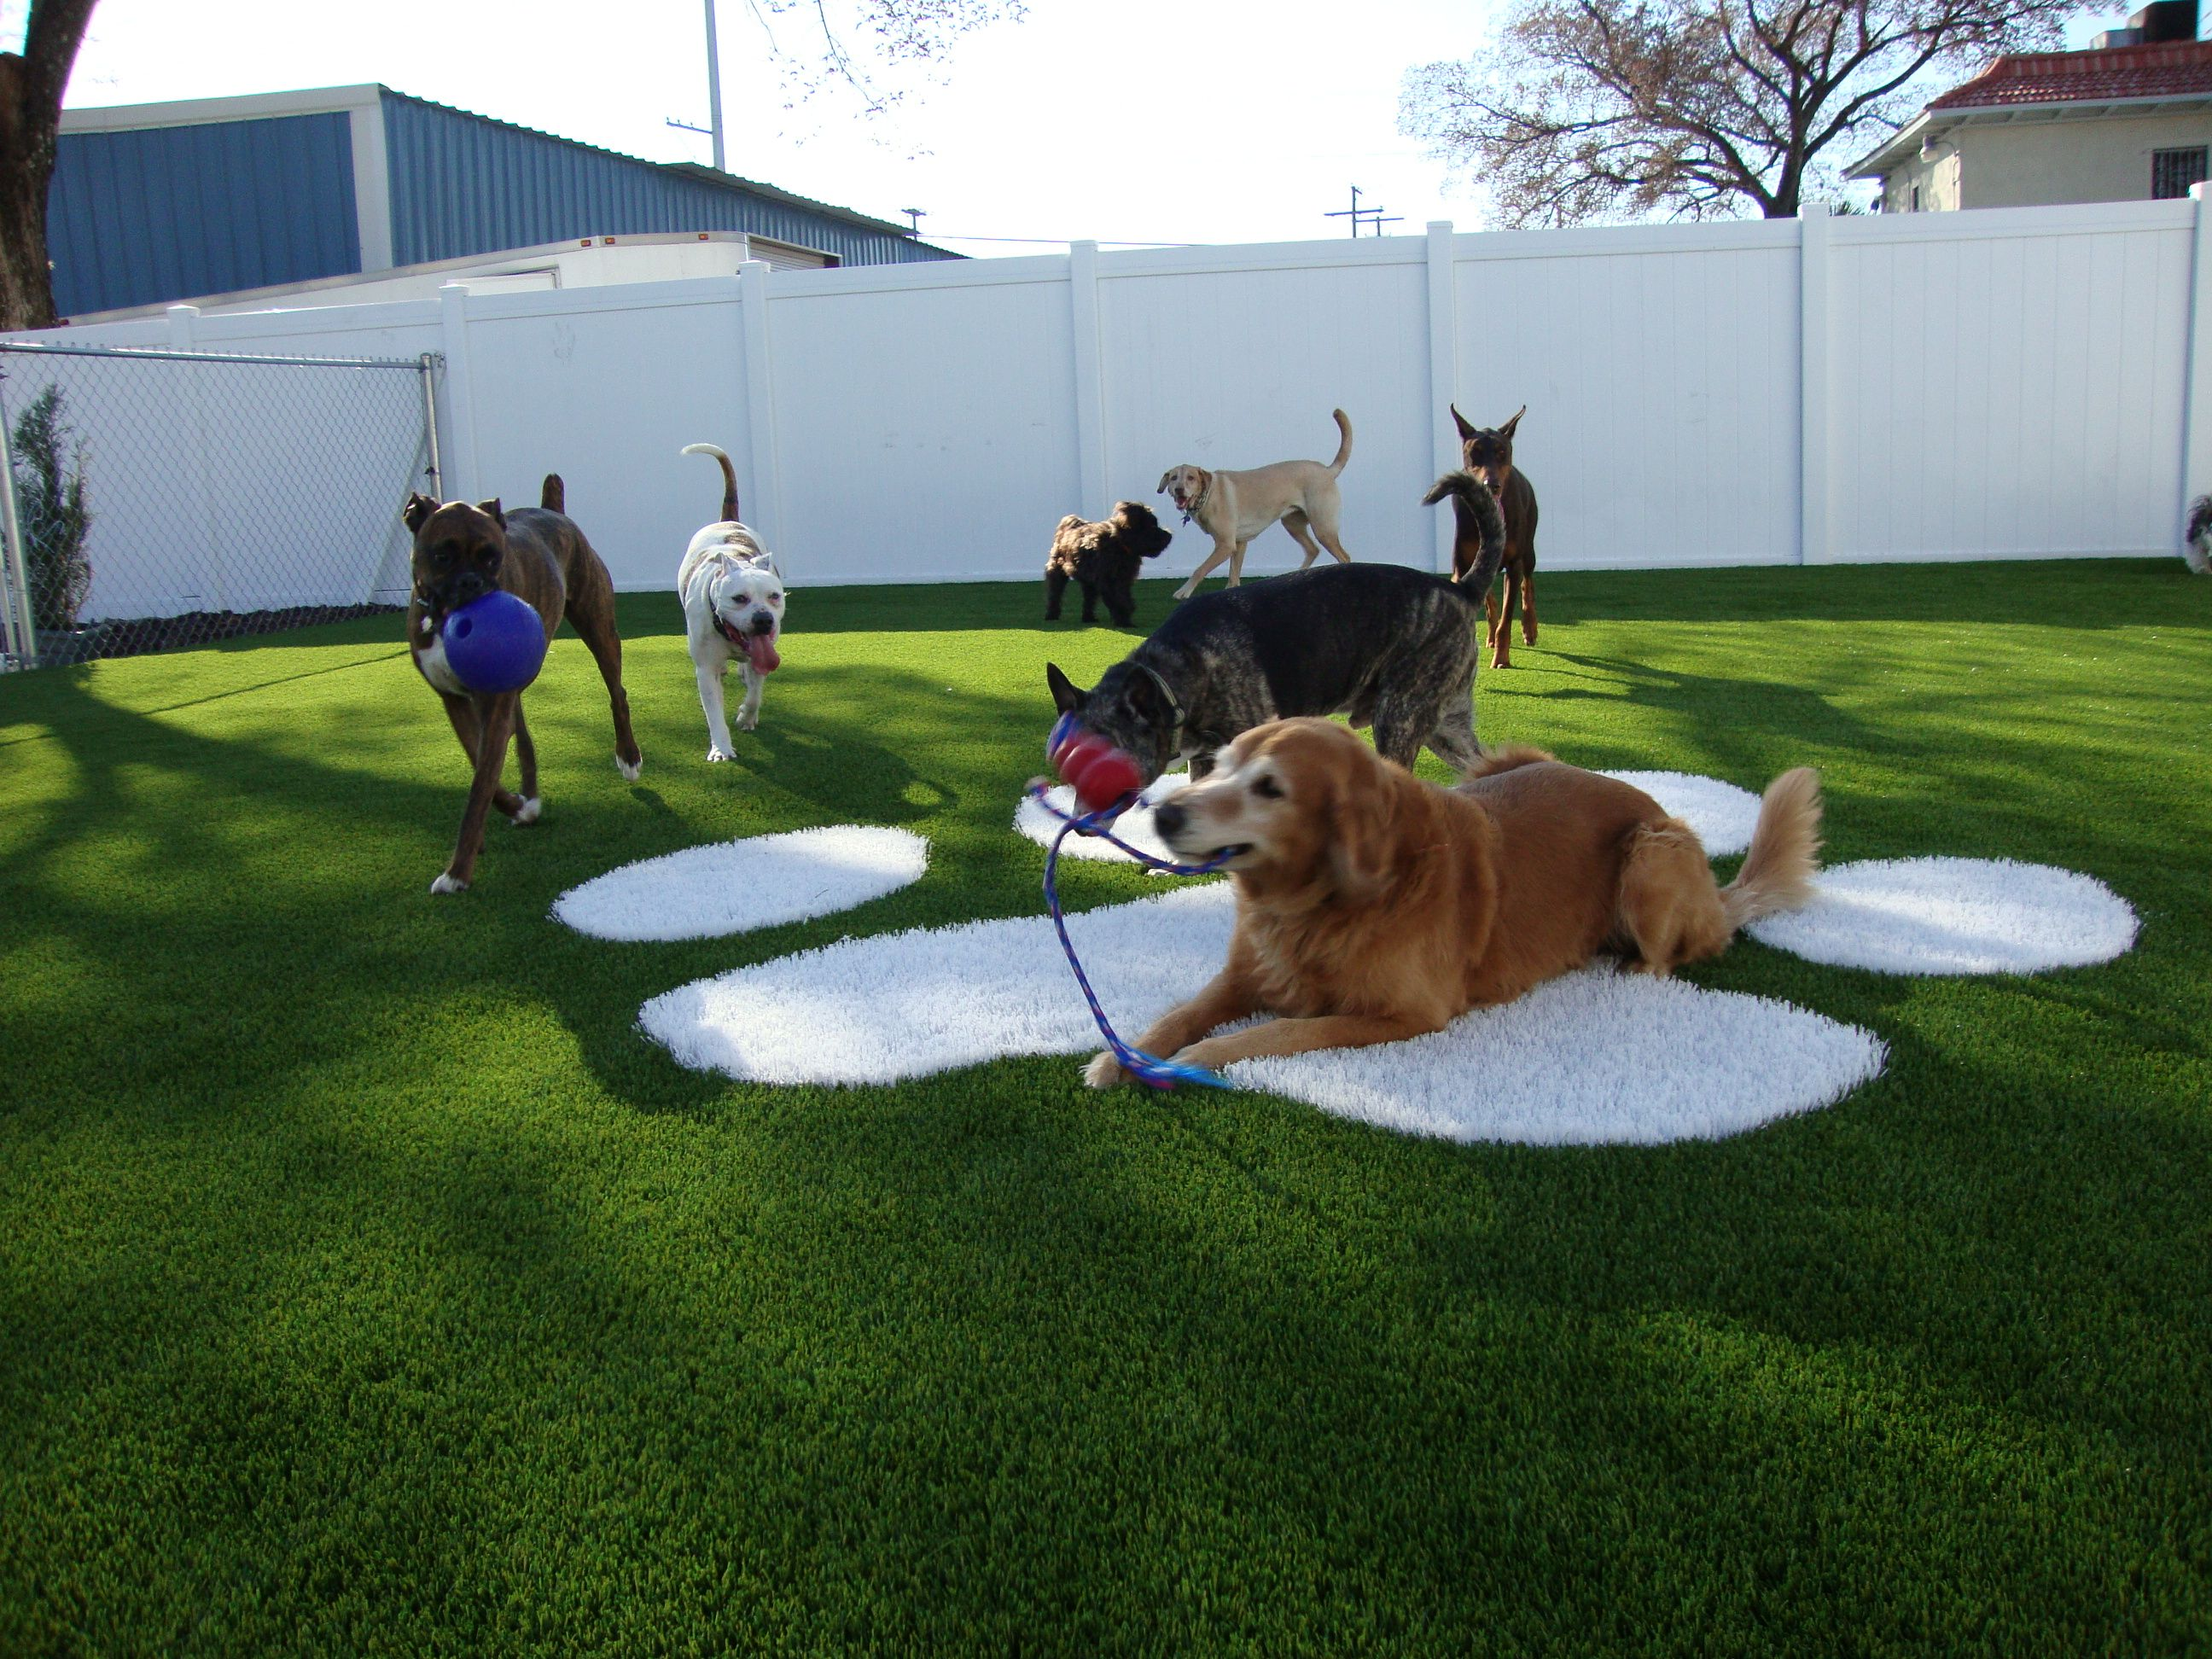 FieldTurf artificial grass is the perfect solution for